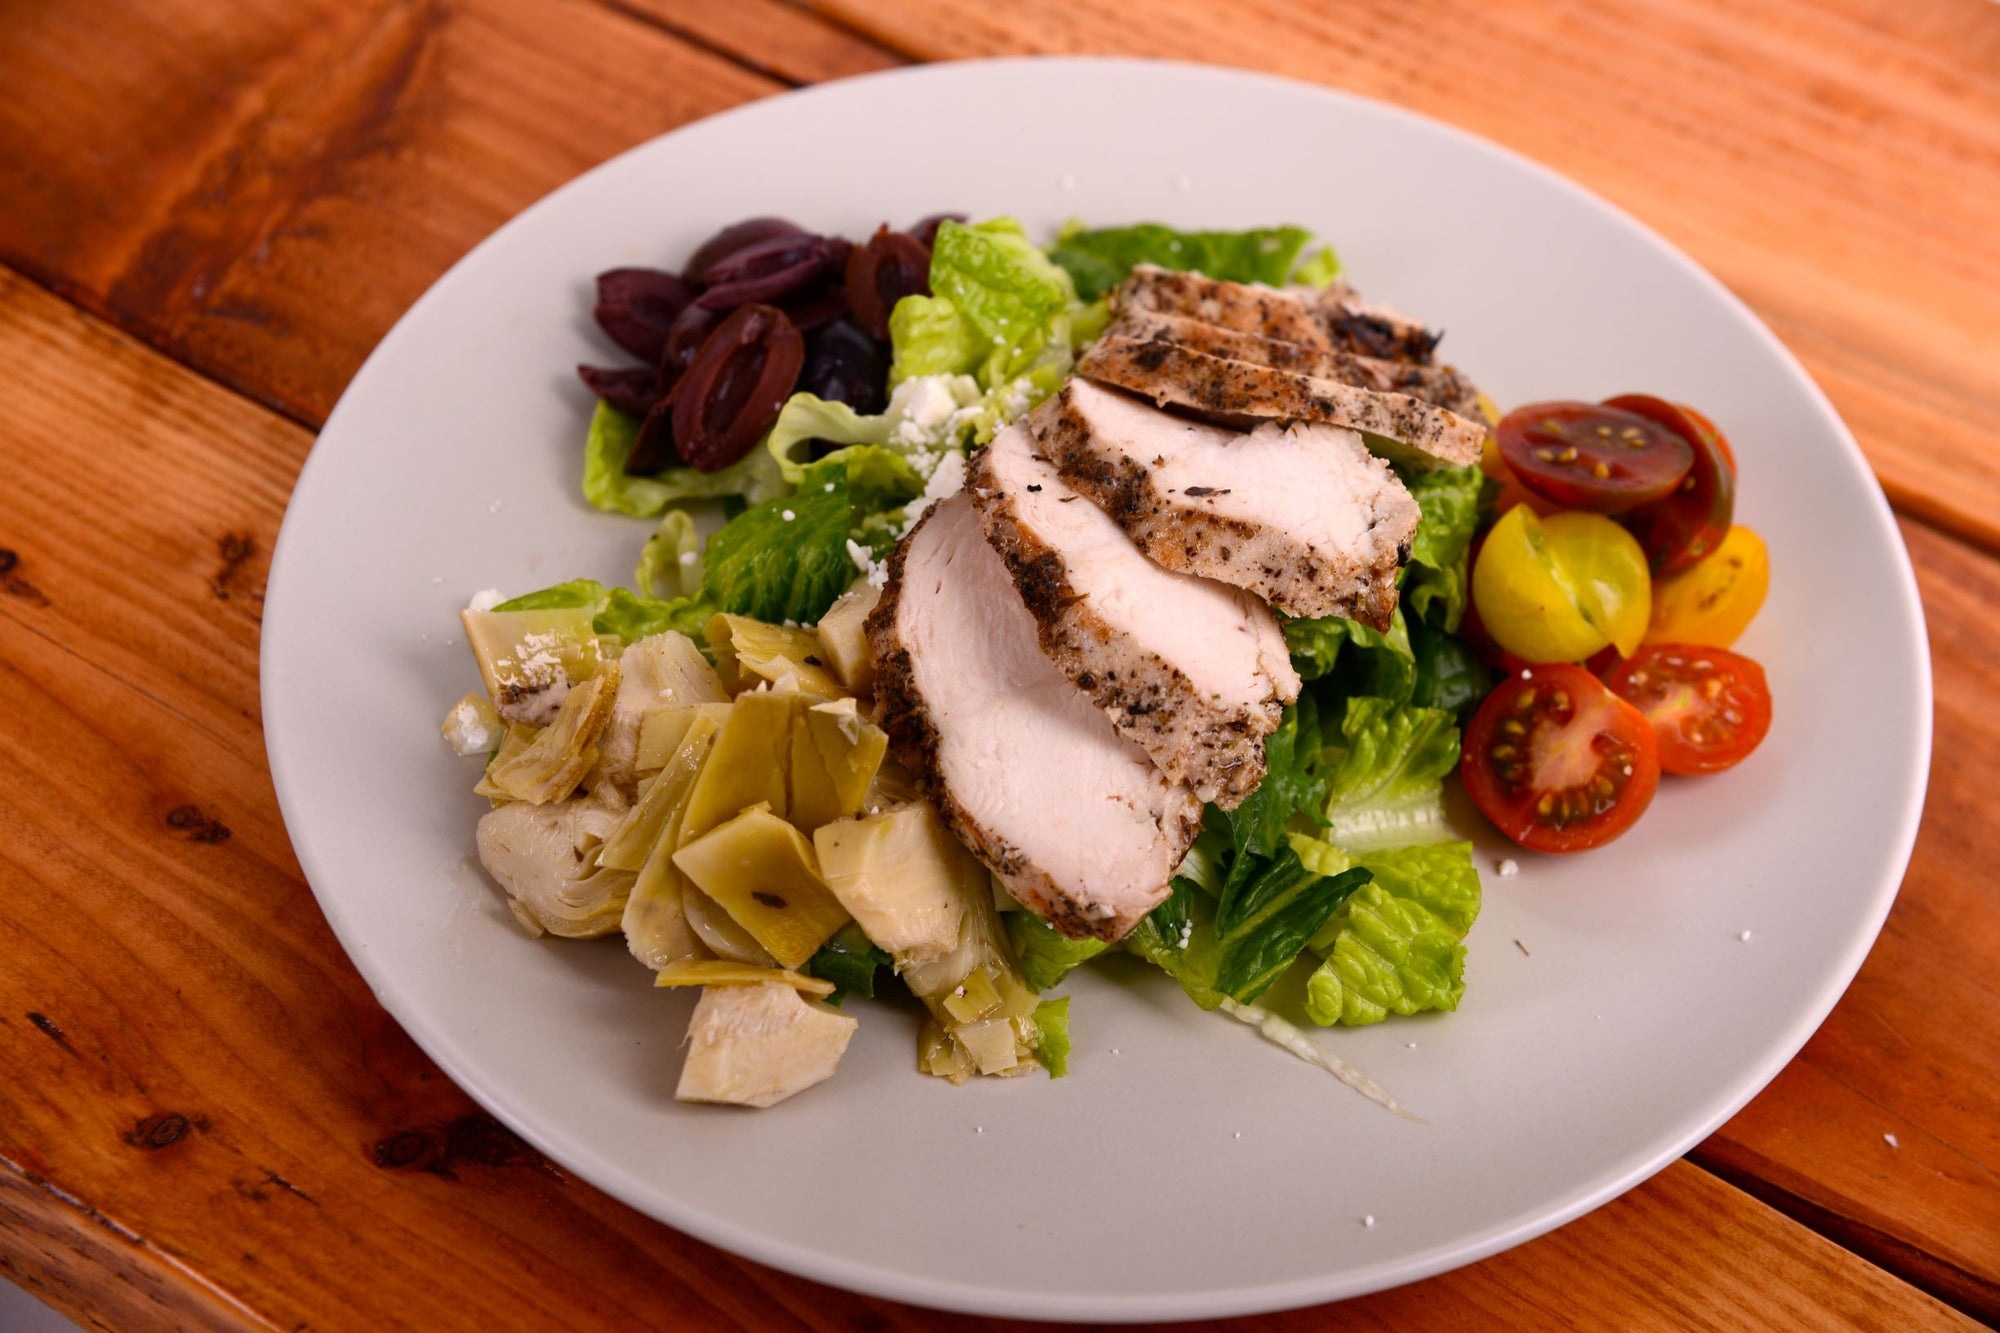 Mediterranean Salad w/ Chicken Breast or Salmon (Thursday 4/22 Delivery)